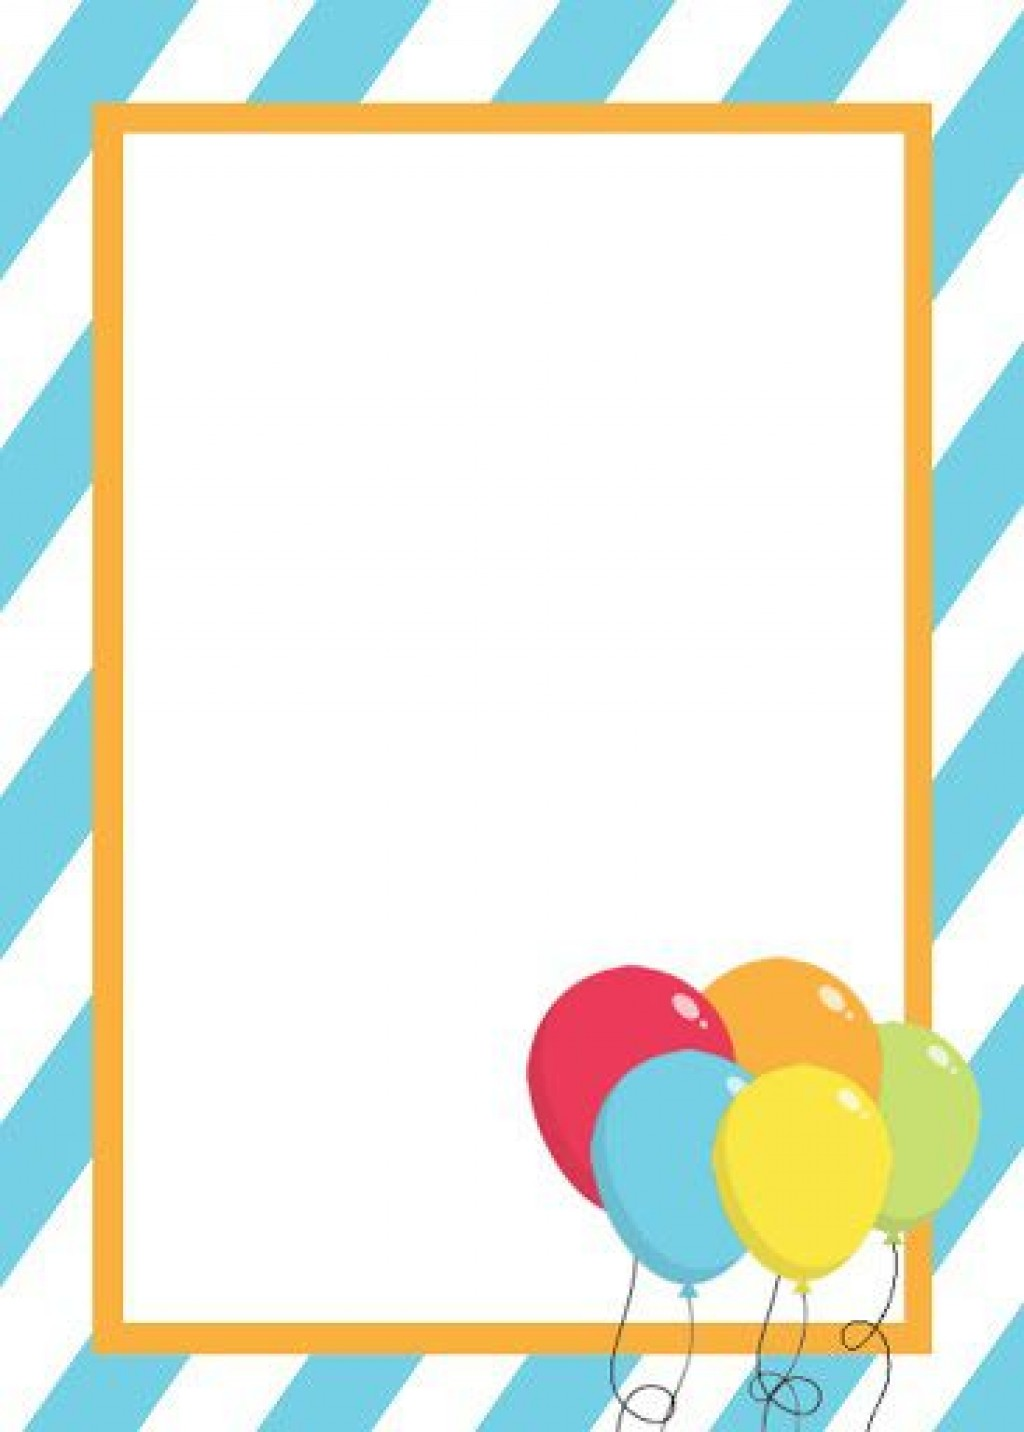 005 Simple Birthday Party Invitation Template Word Example  40th Wording Sample Unicorn FreeLarge